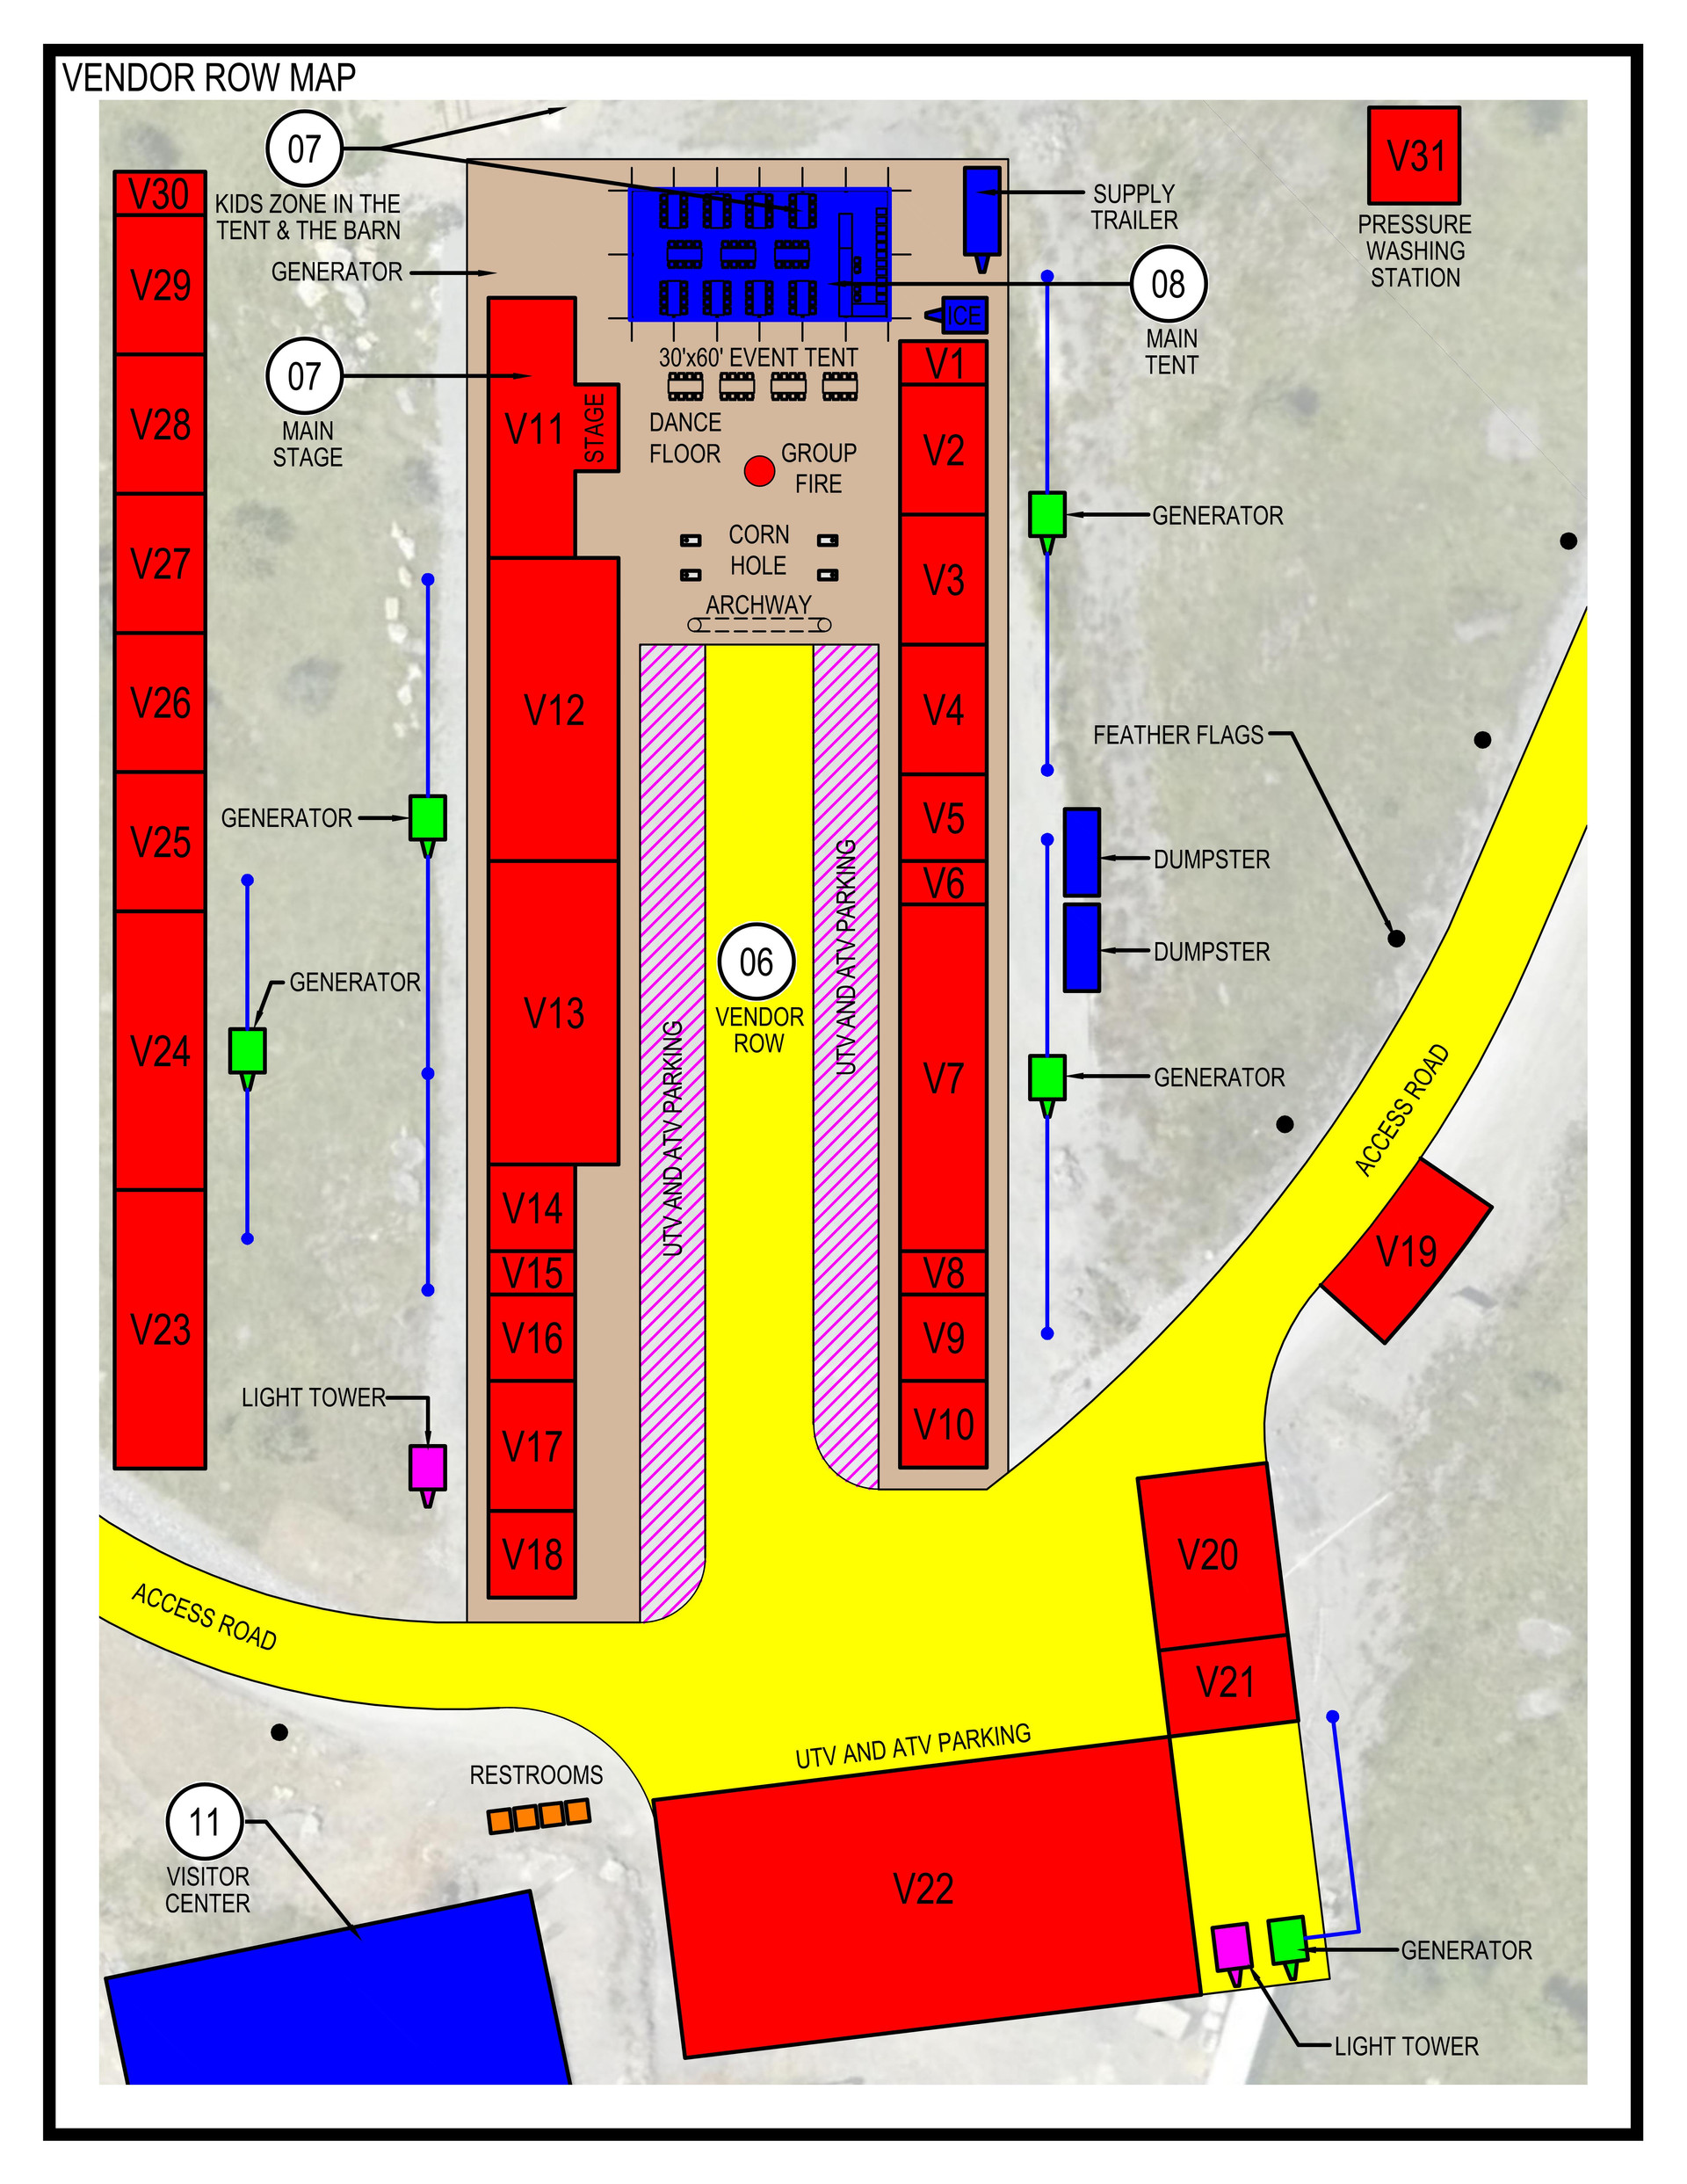 Map - Vendor Row.jpg